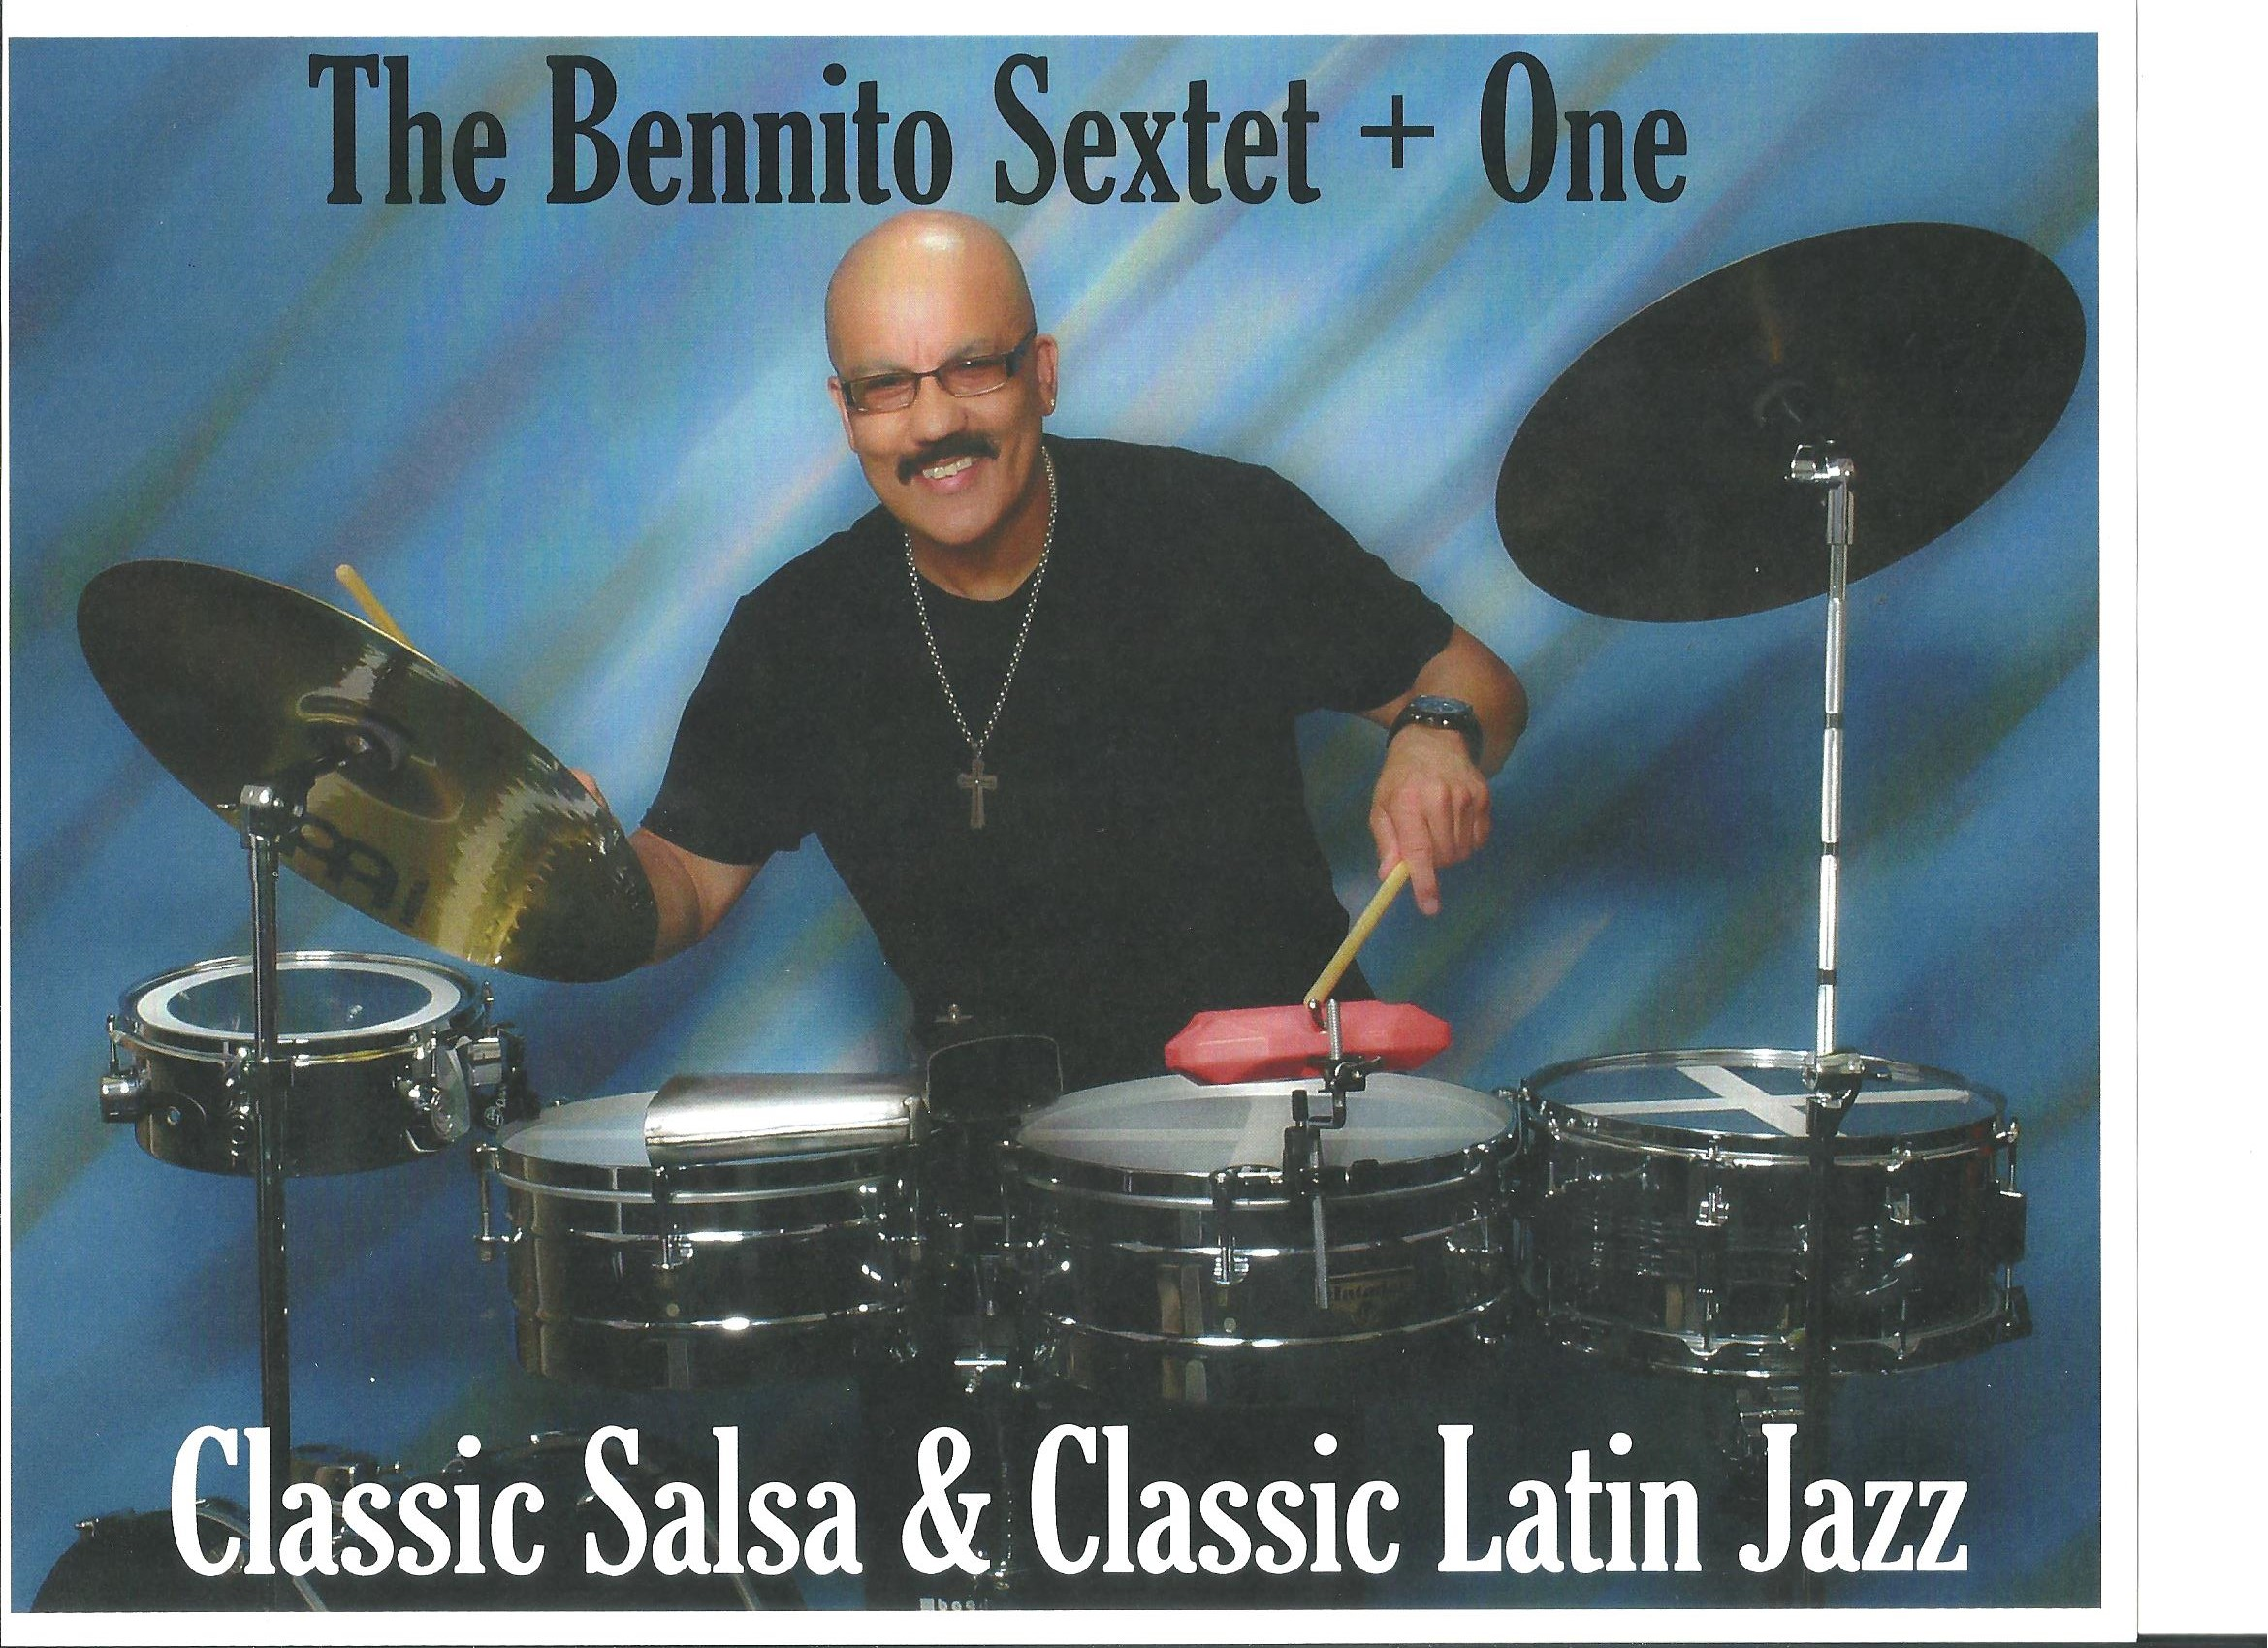 The Bennito Sextet + One - The Resurection Of